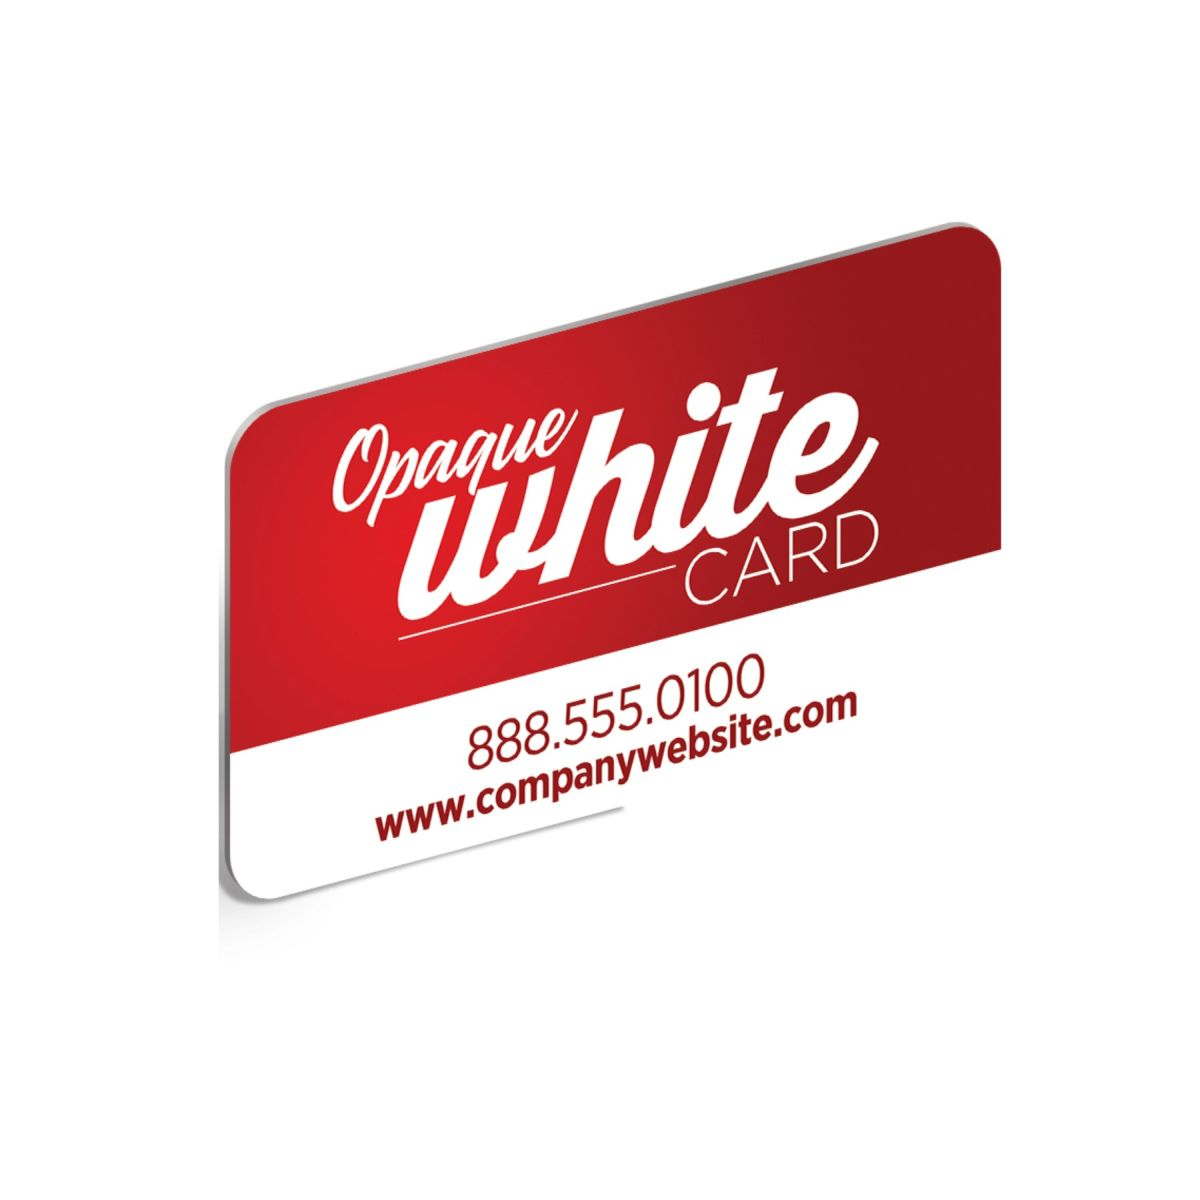 WhitePlastic-Business-Card-022118-3